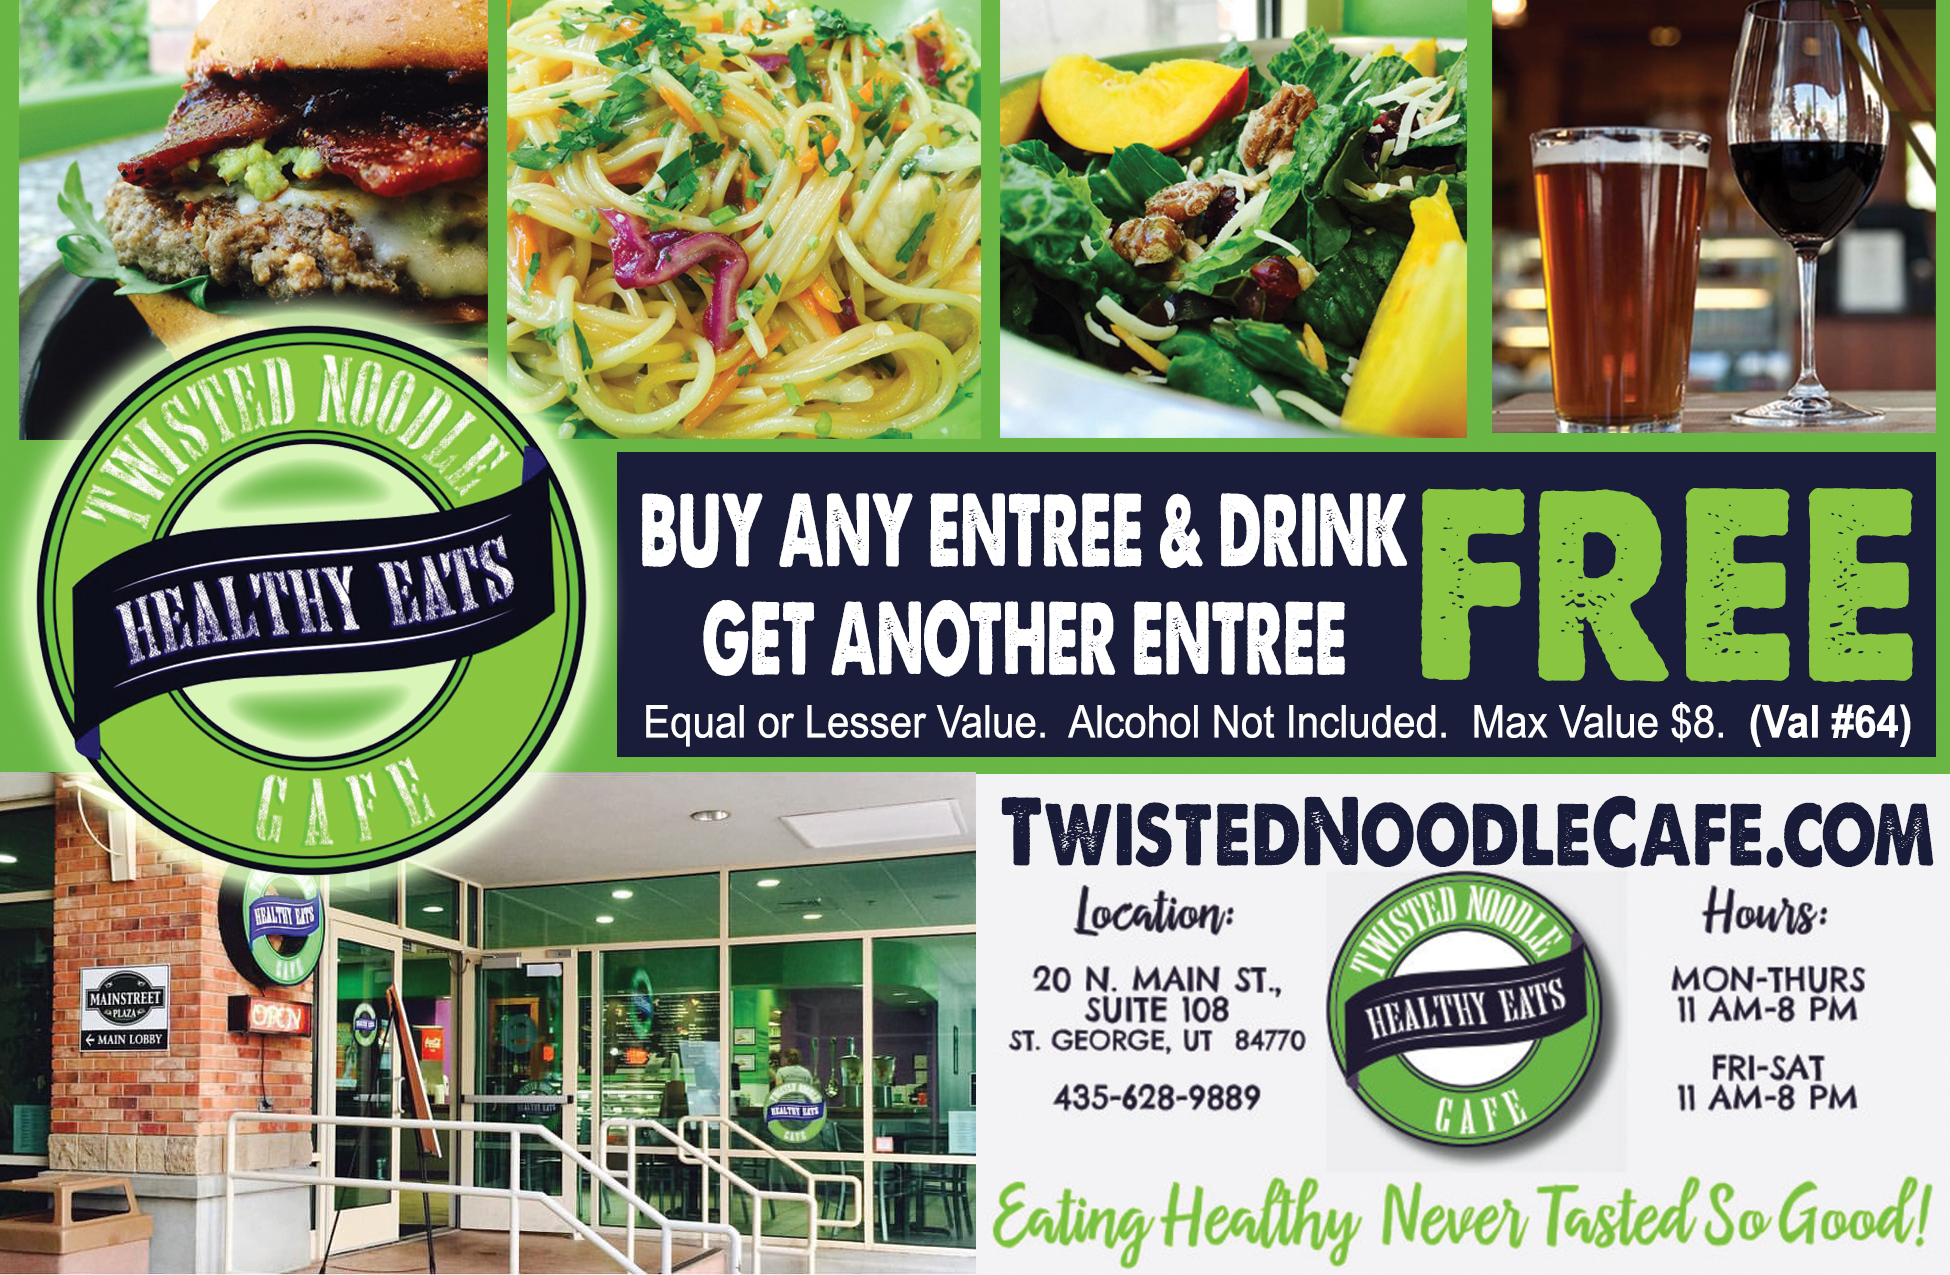 Twisted Noodle Cafe - Healthy Eats